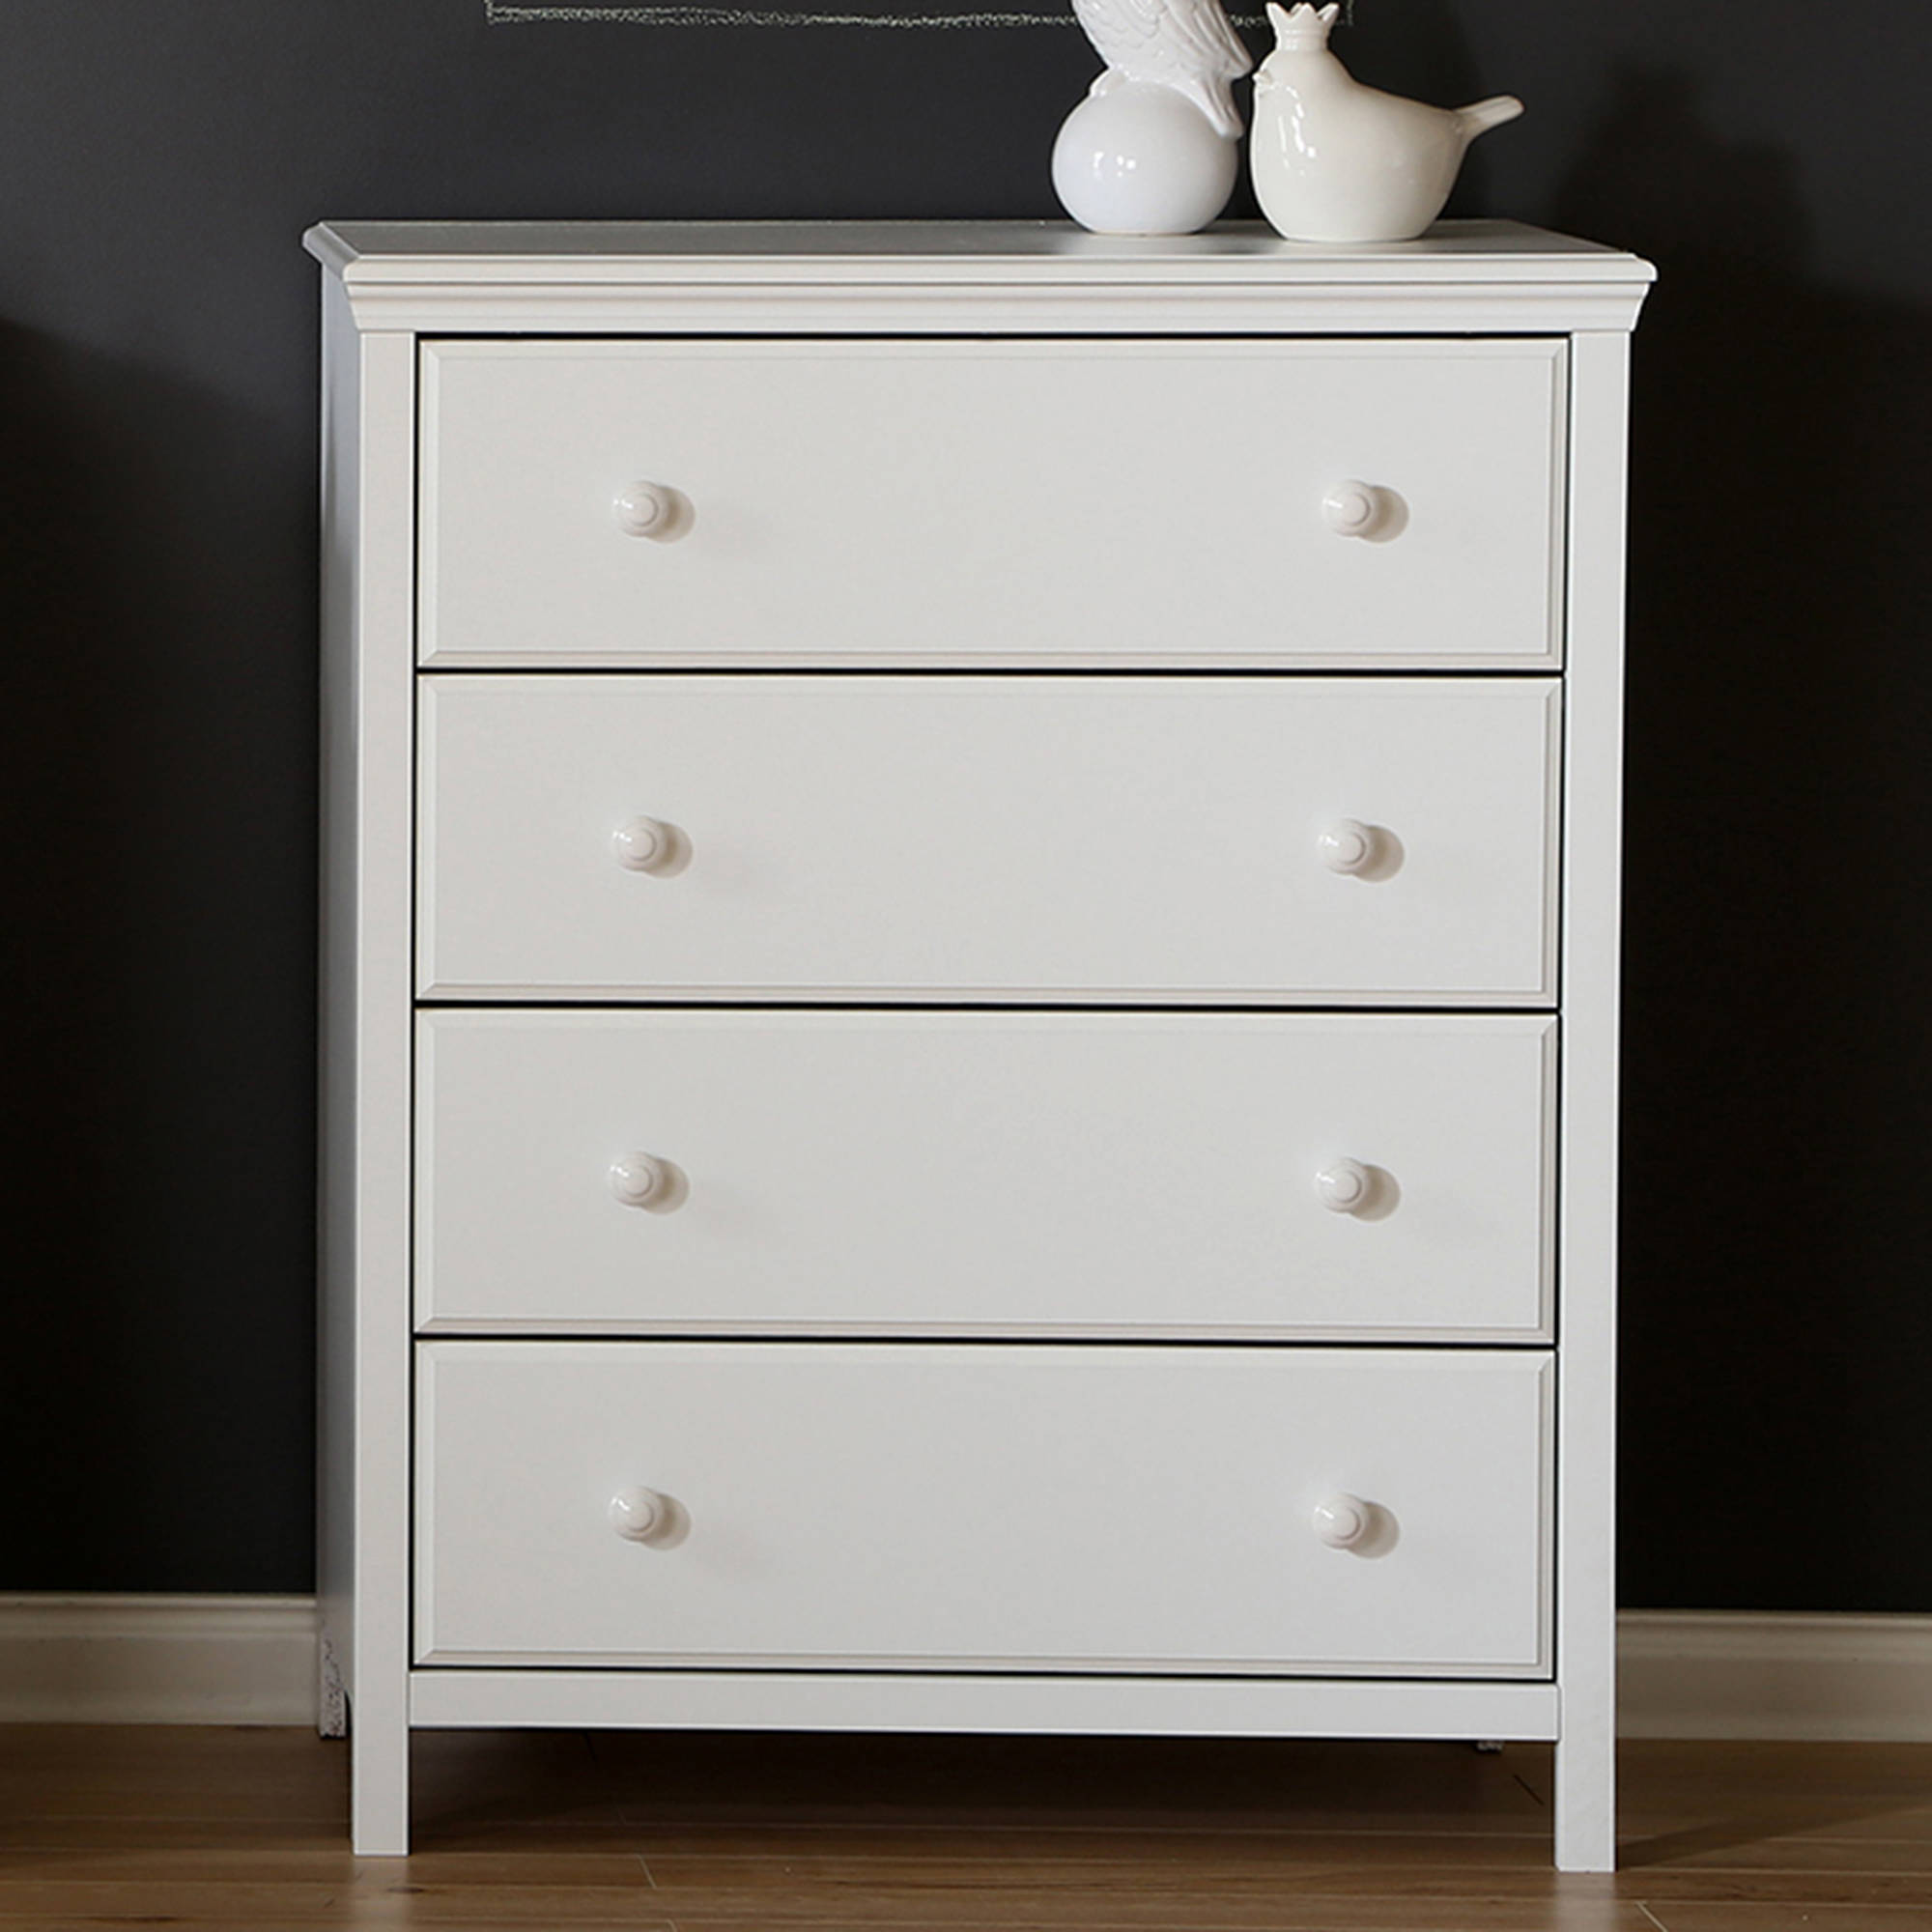 South Shore Cotton Candy 4 Drawer Chest Multiple Finishes